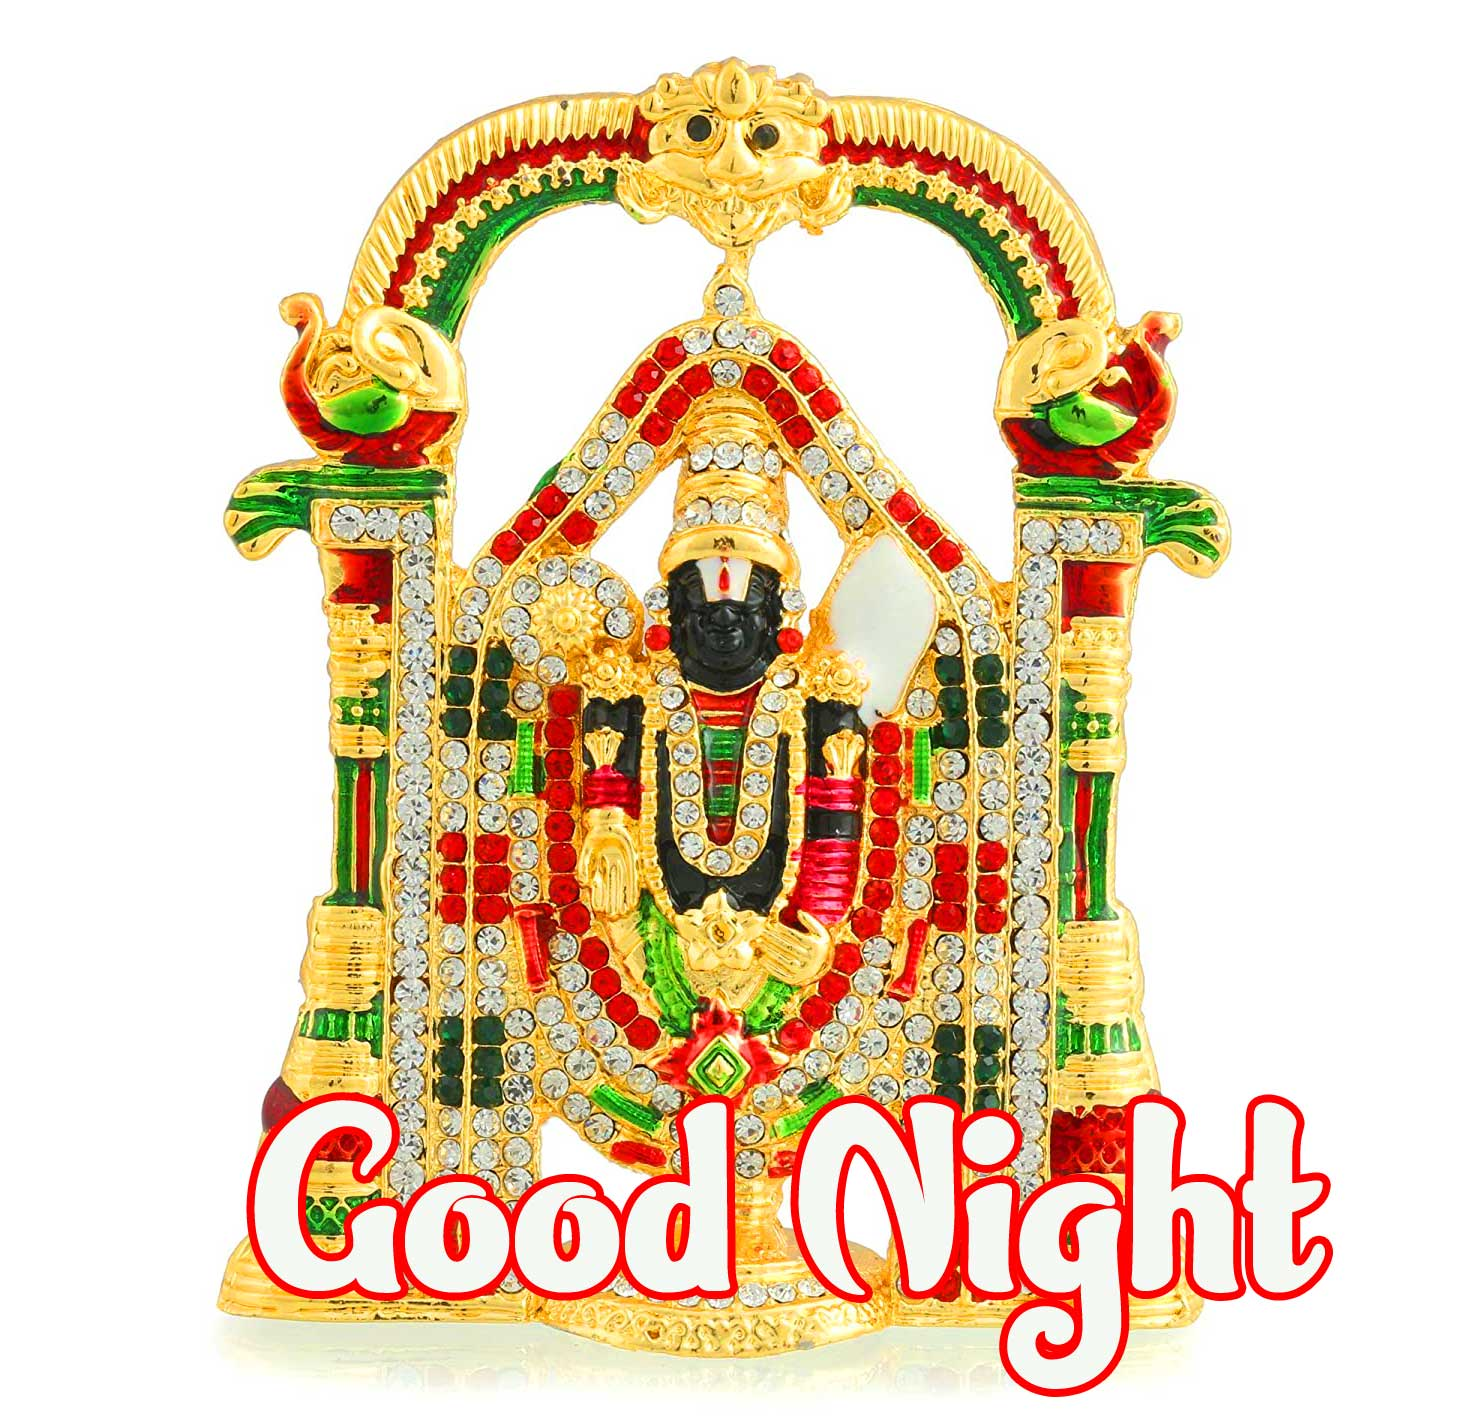 God Good Night Wishes Images 28